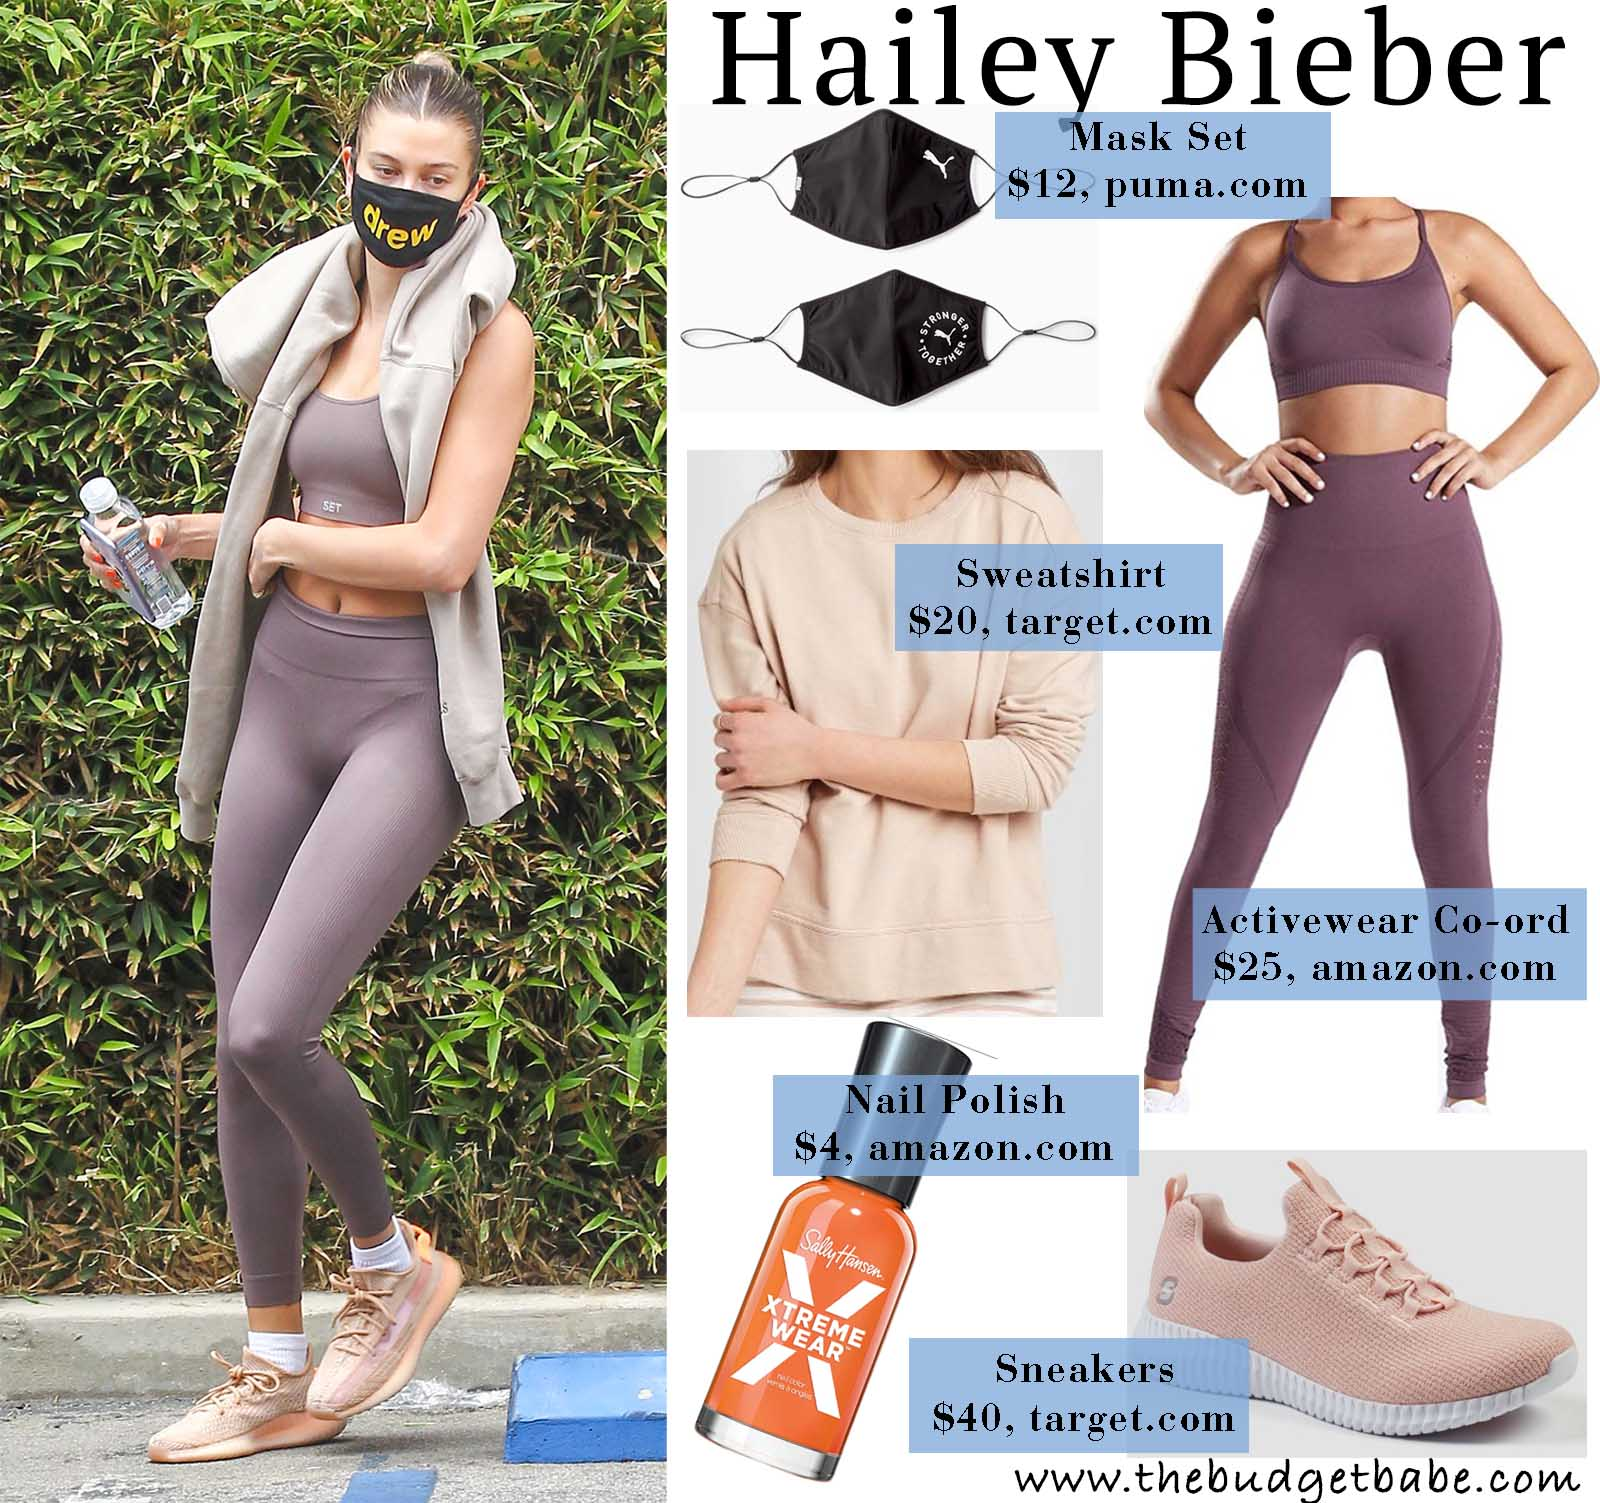 Hailey sweats in style!